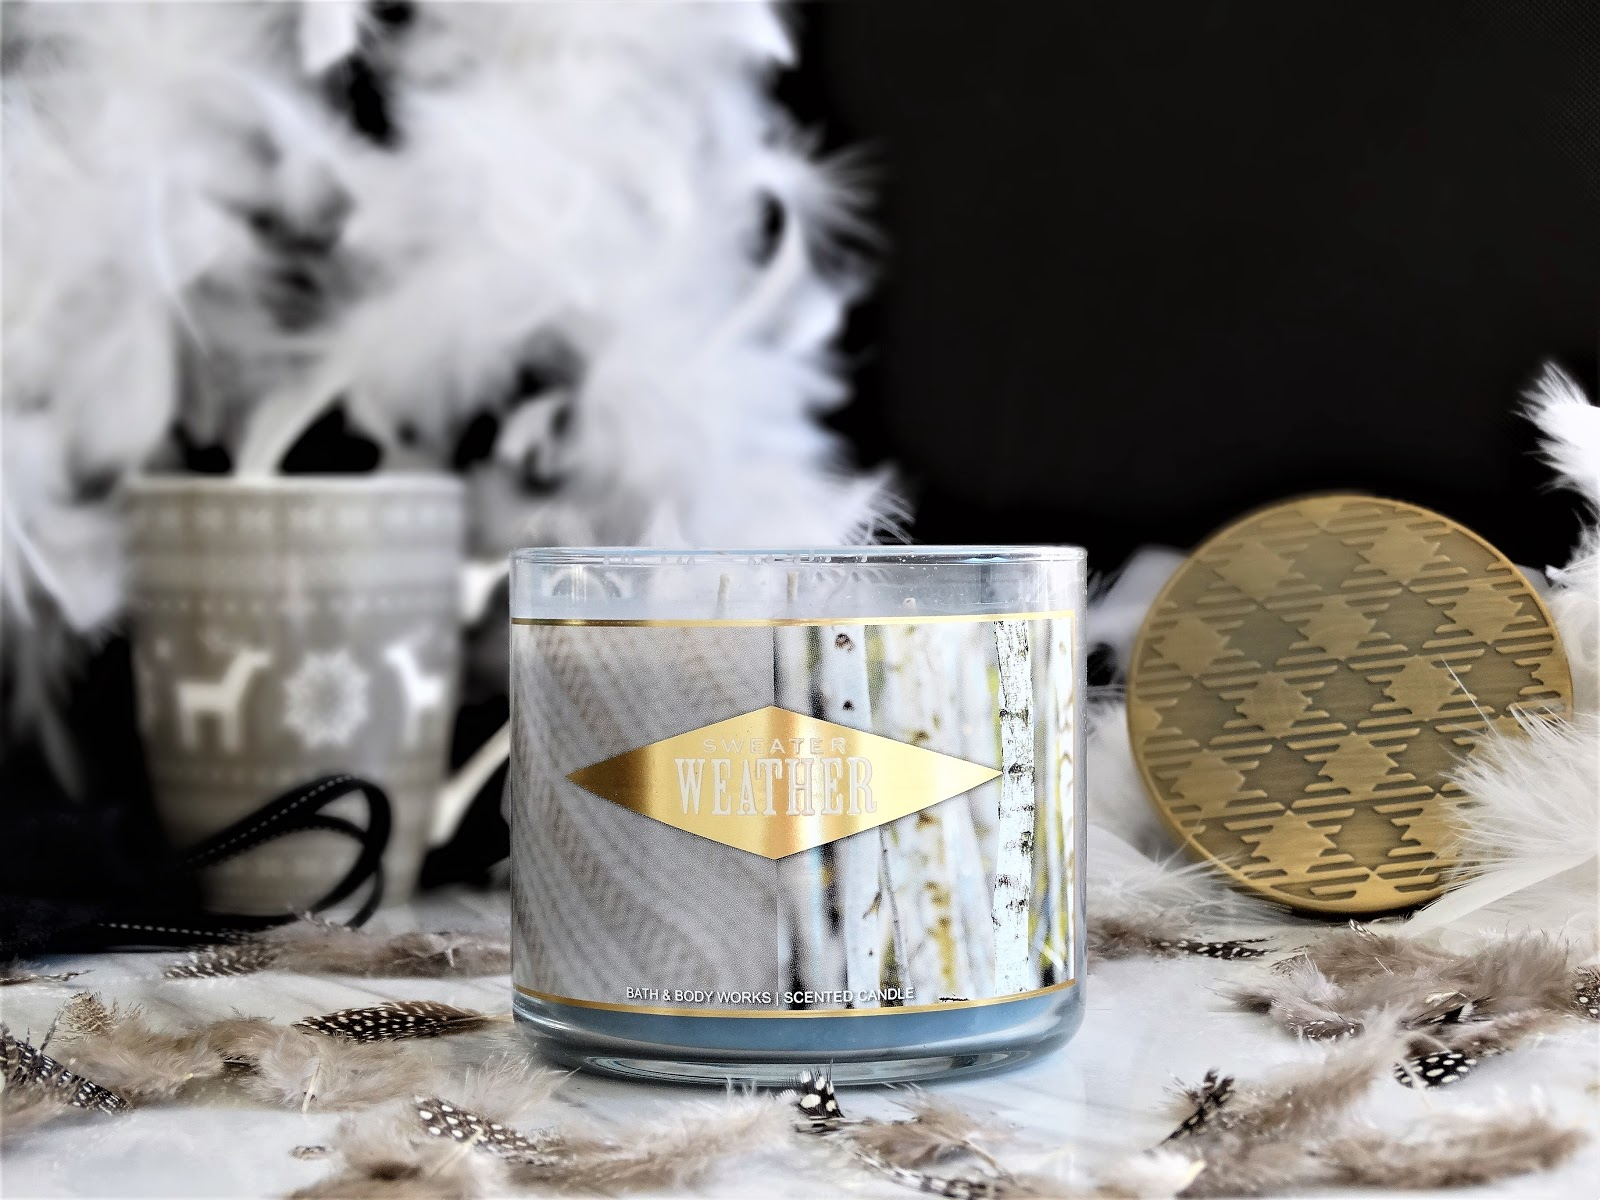 Sweater Weather Bath Body Works Ambiance Et Fragrance Blog